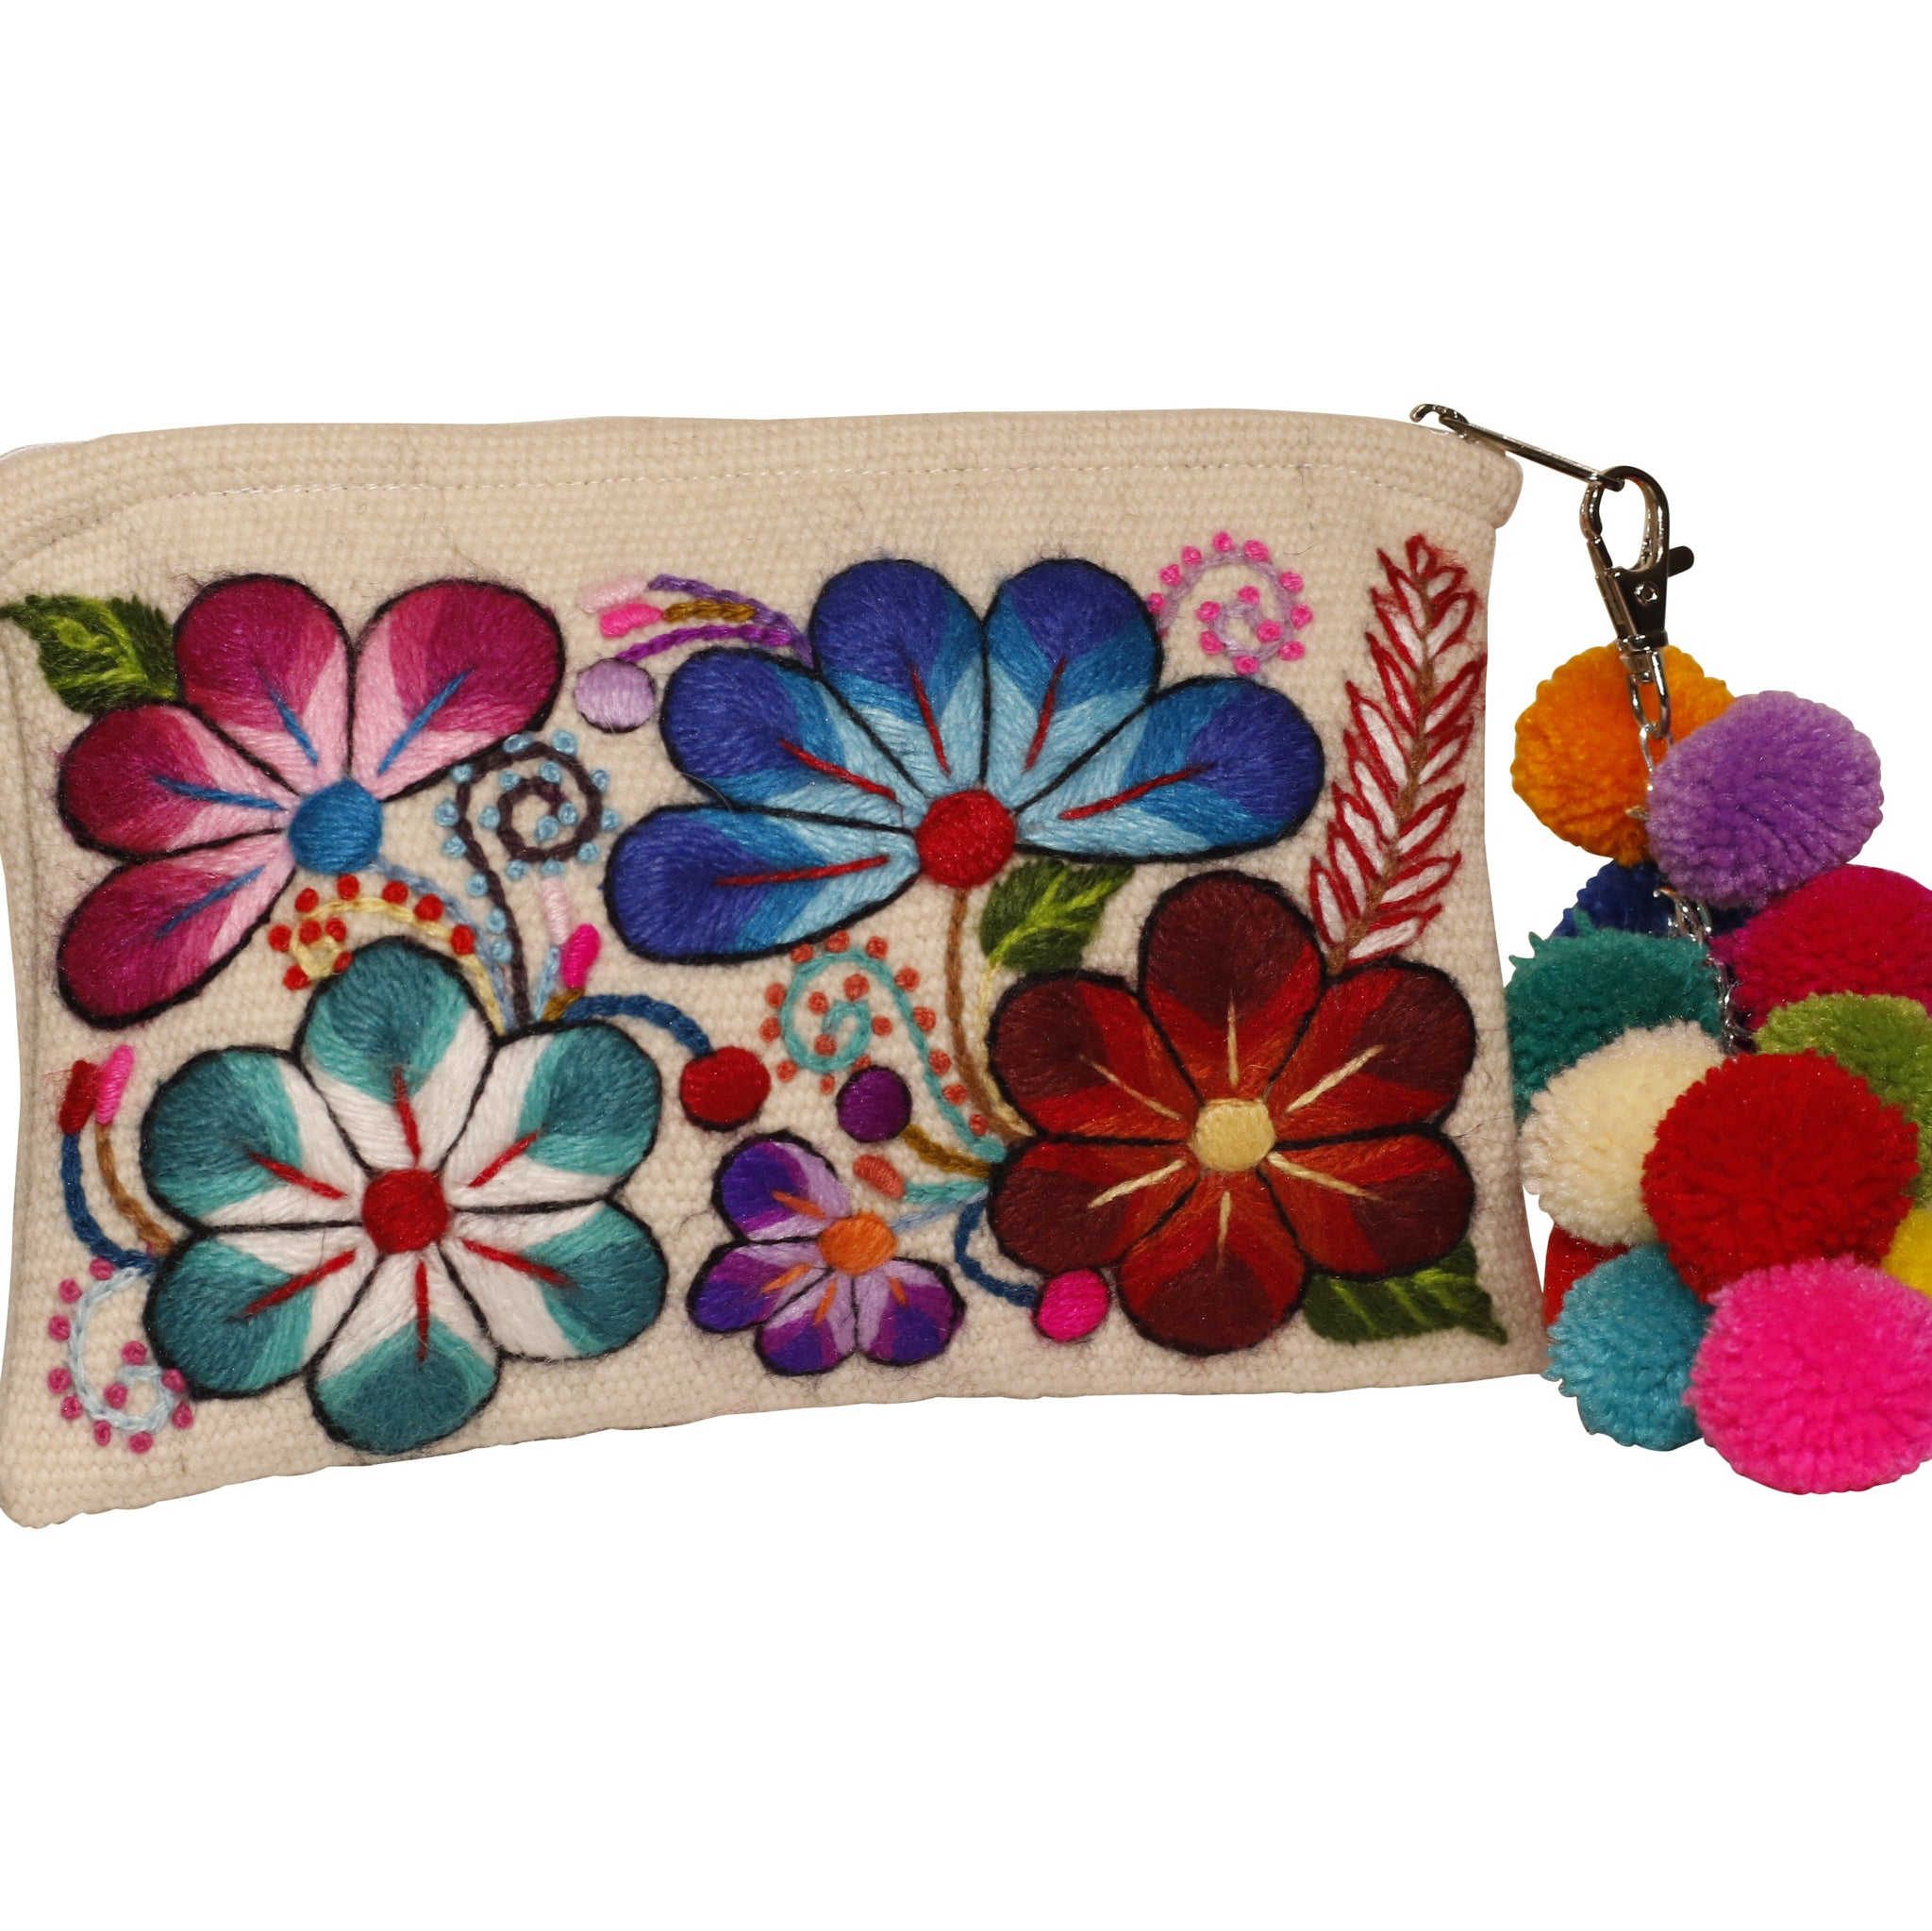 Valentina Embroidered Clutch Bag